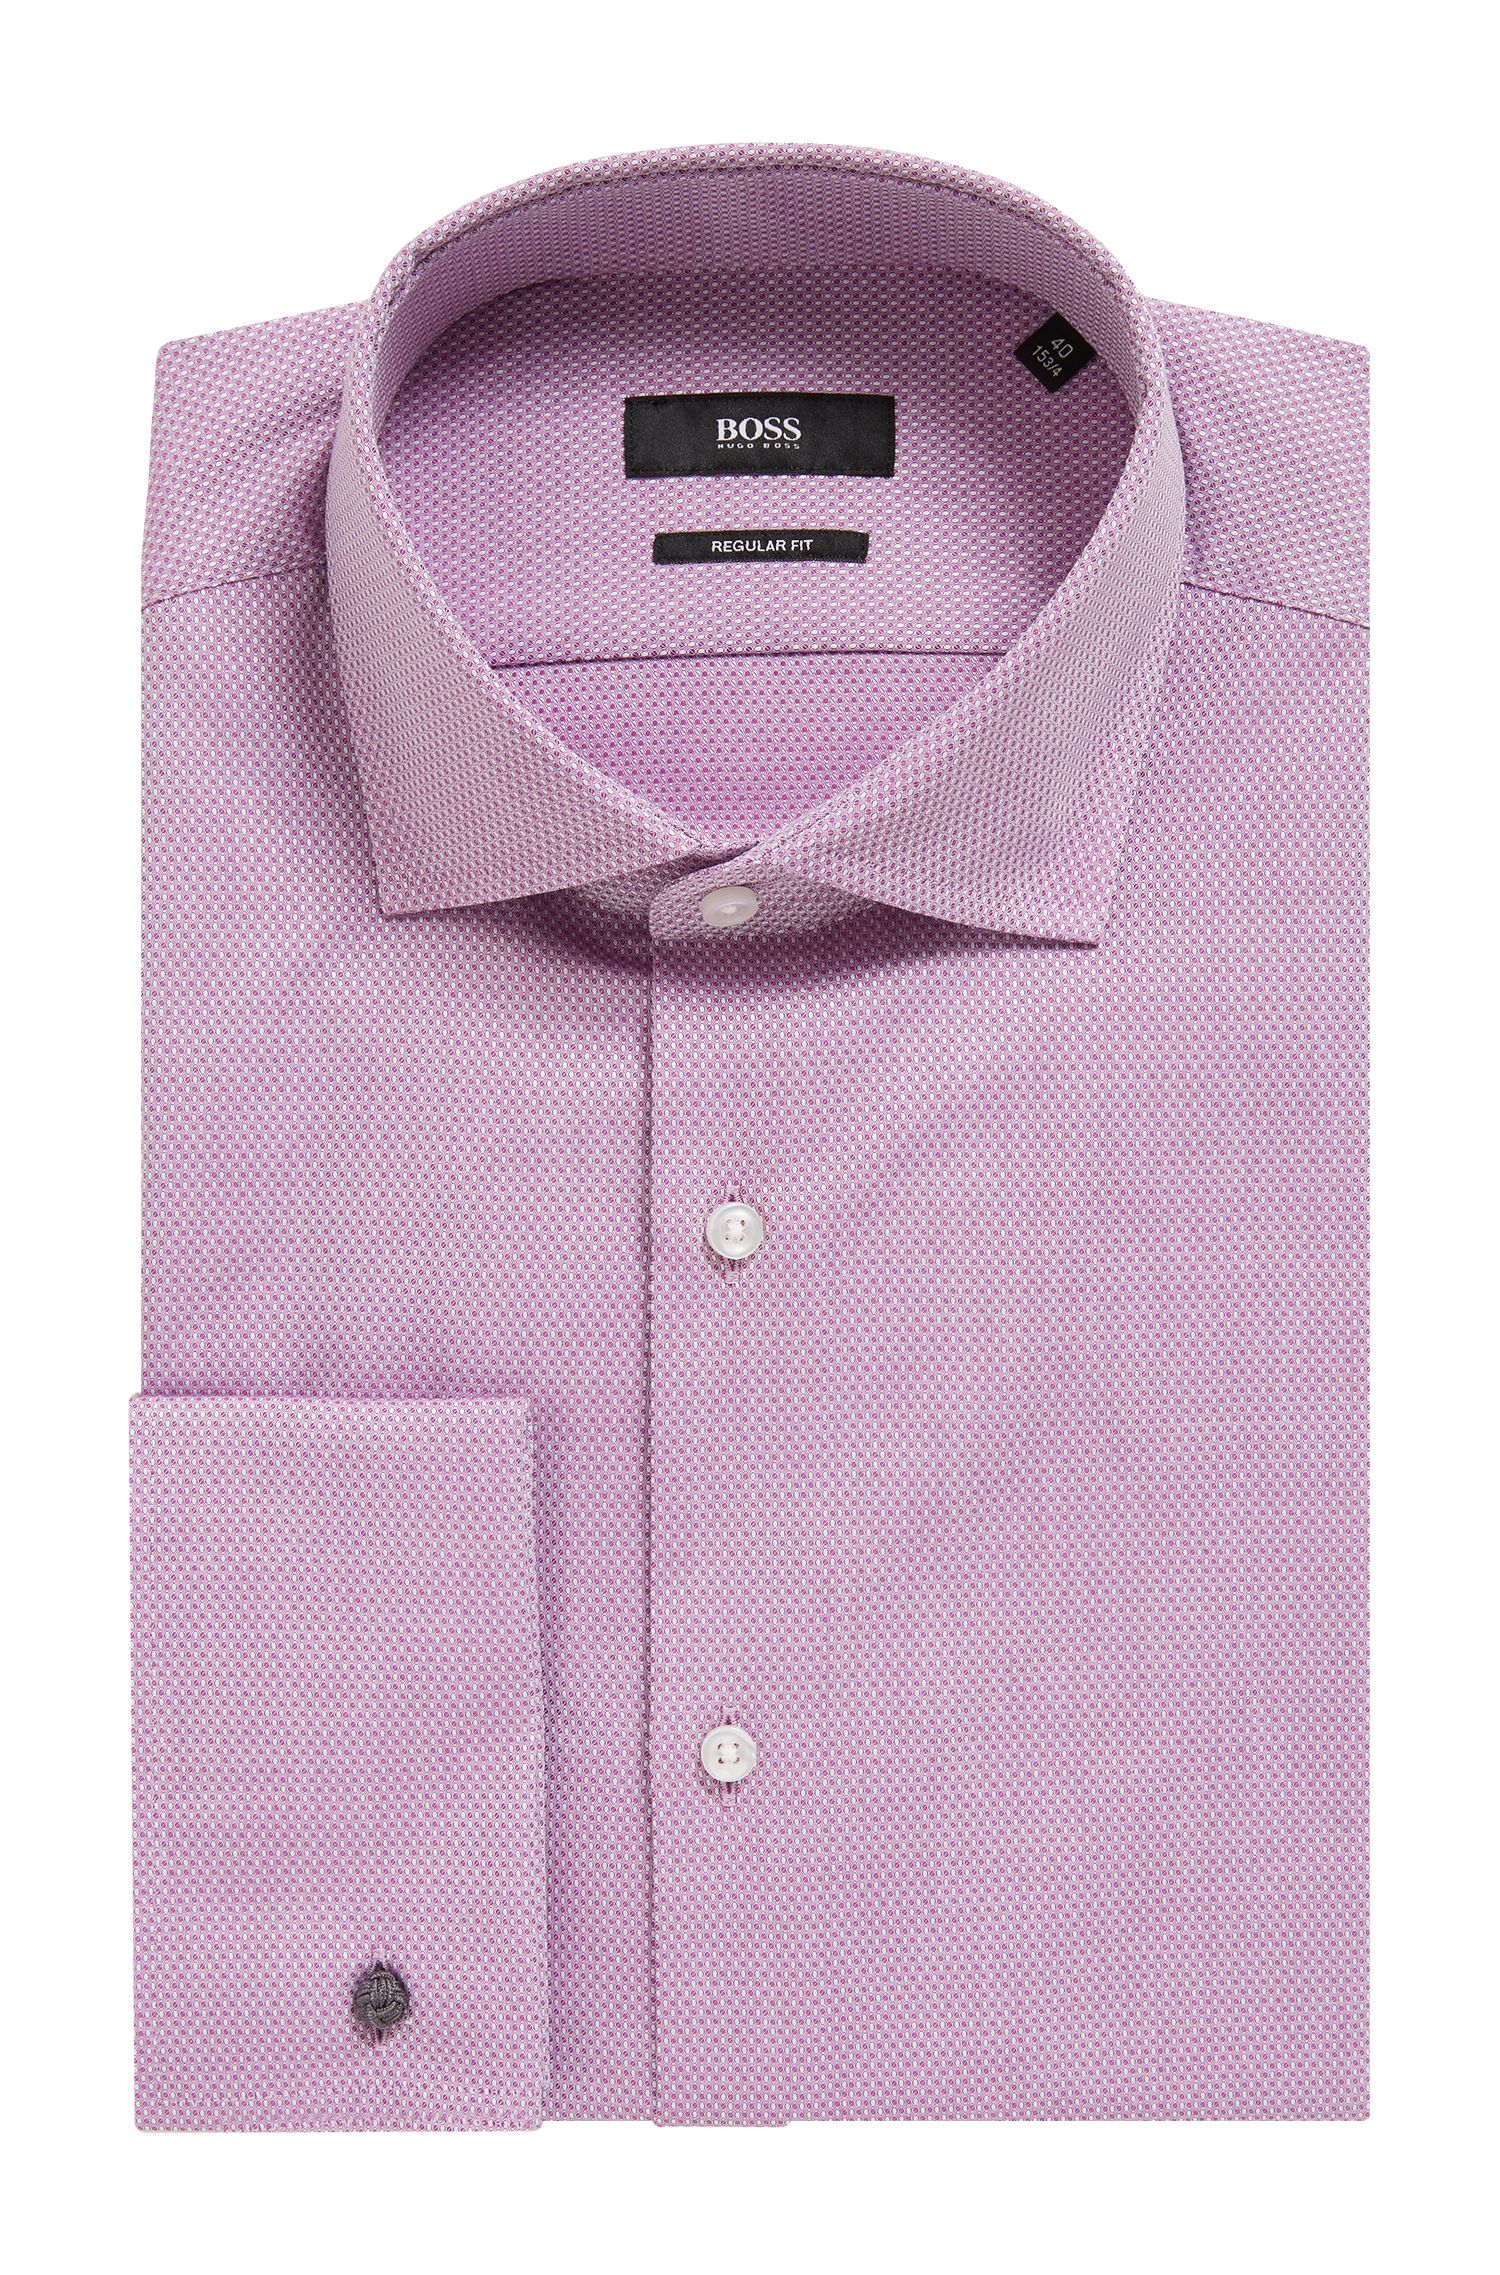 Regular-fit shirt in micro-patterned dobby cotton, Dark pink